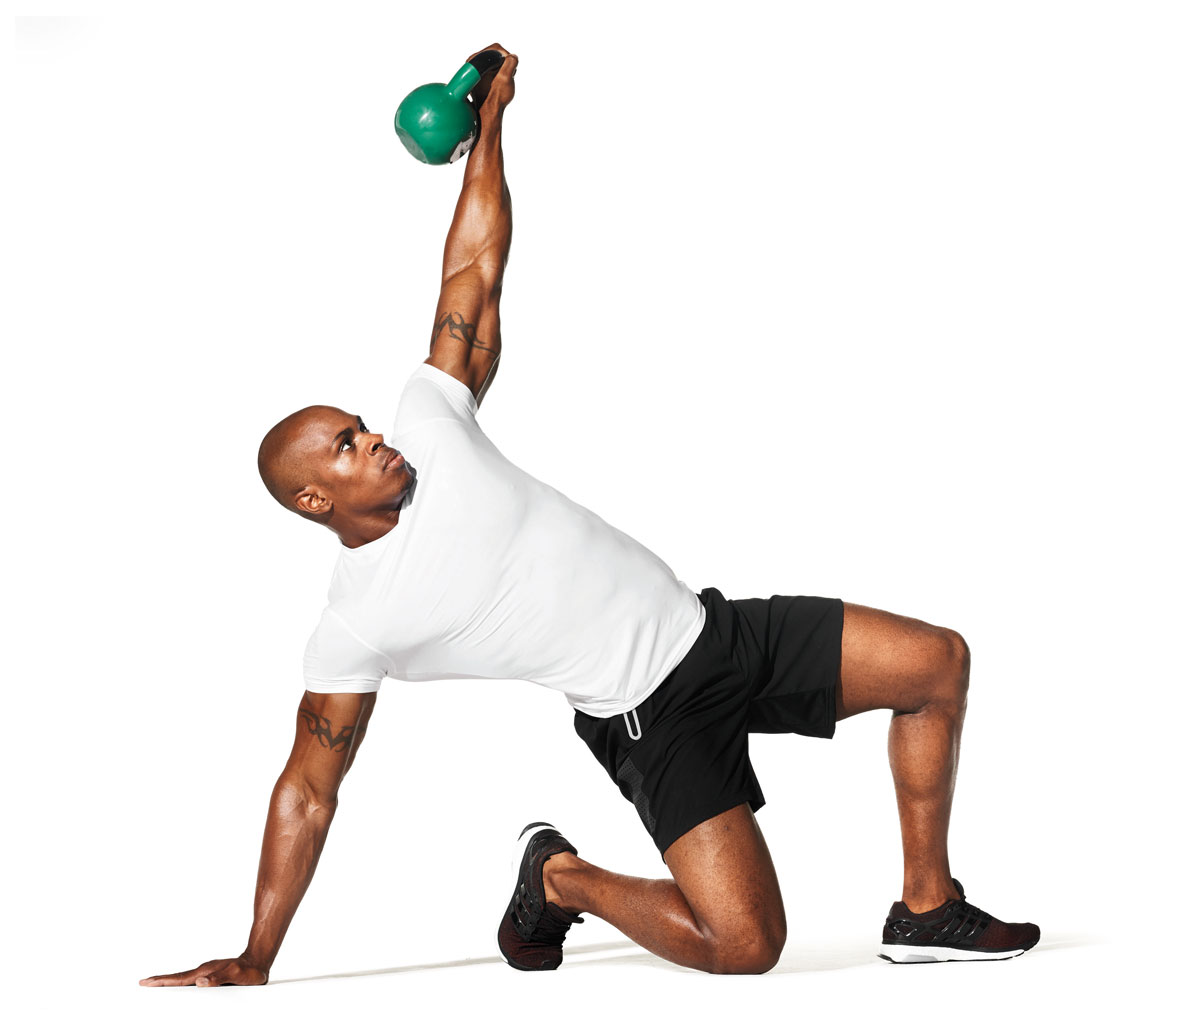 This photo shows a man doing kettle-bell work